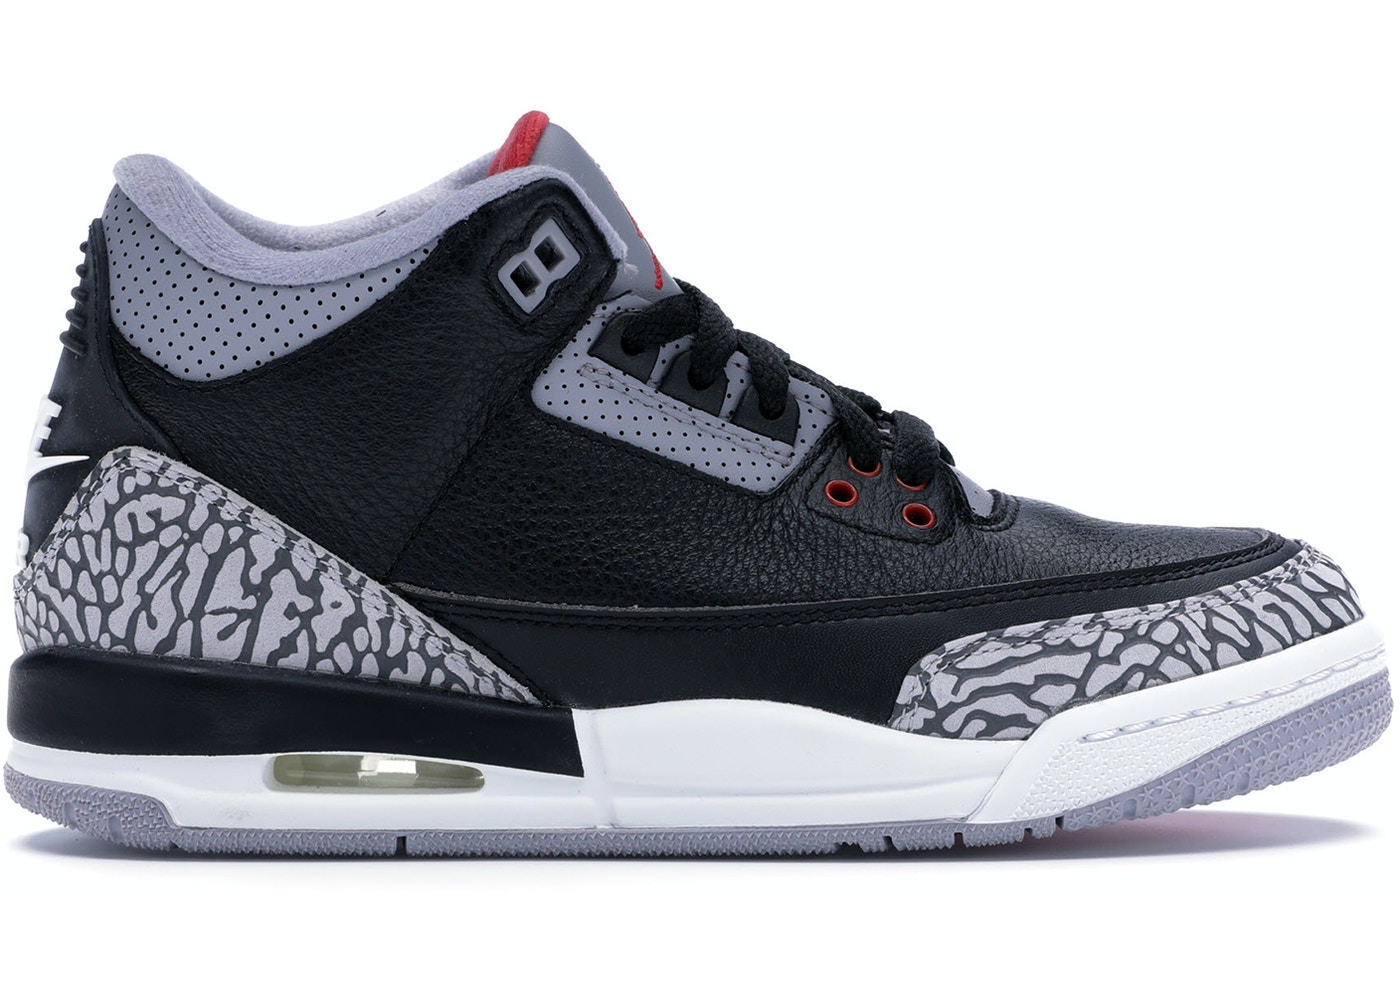 huge discount 3d9ba fcb3a Jordan 3 Retro Black Cement 2018 (GS)